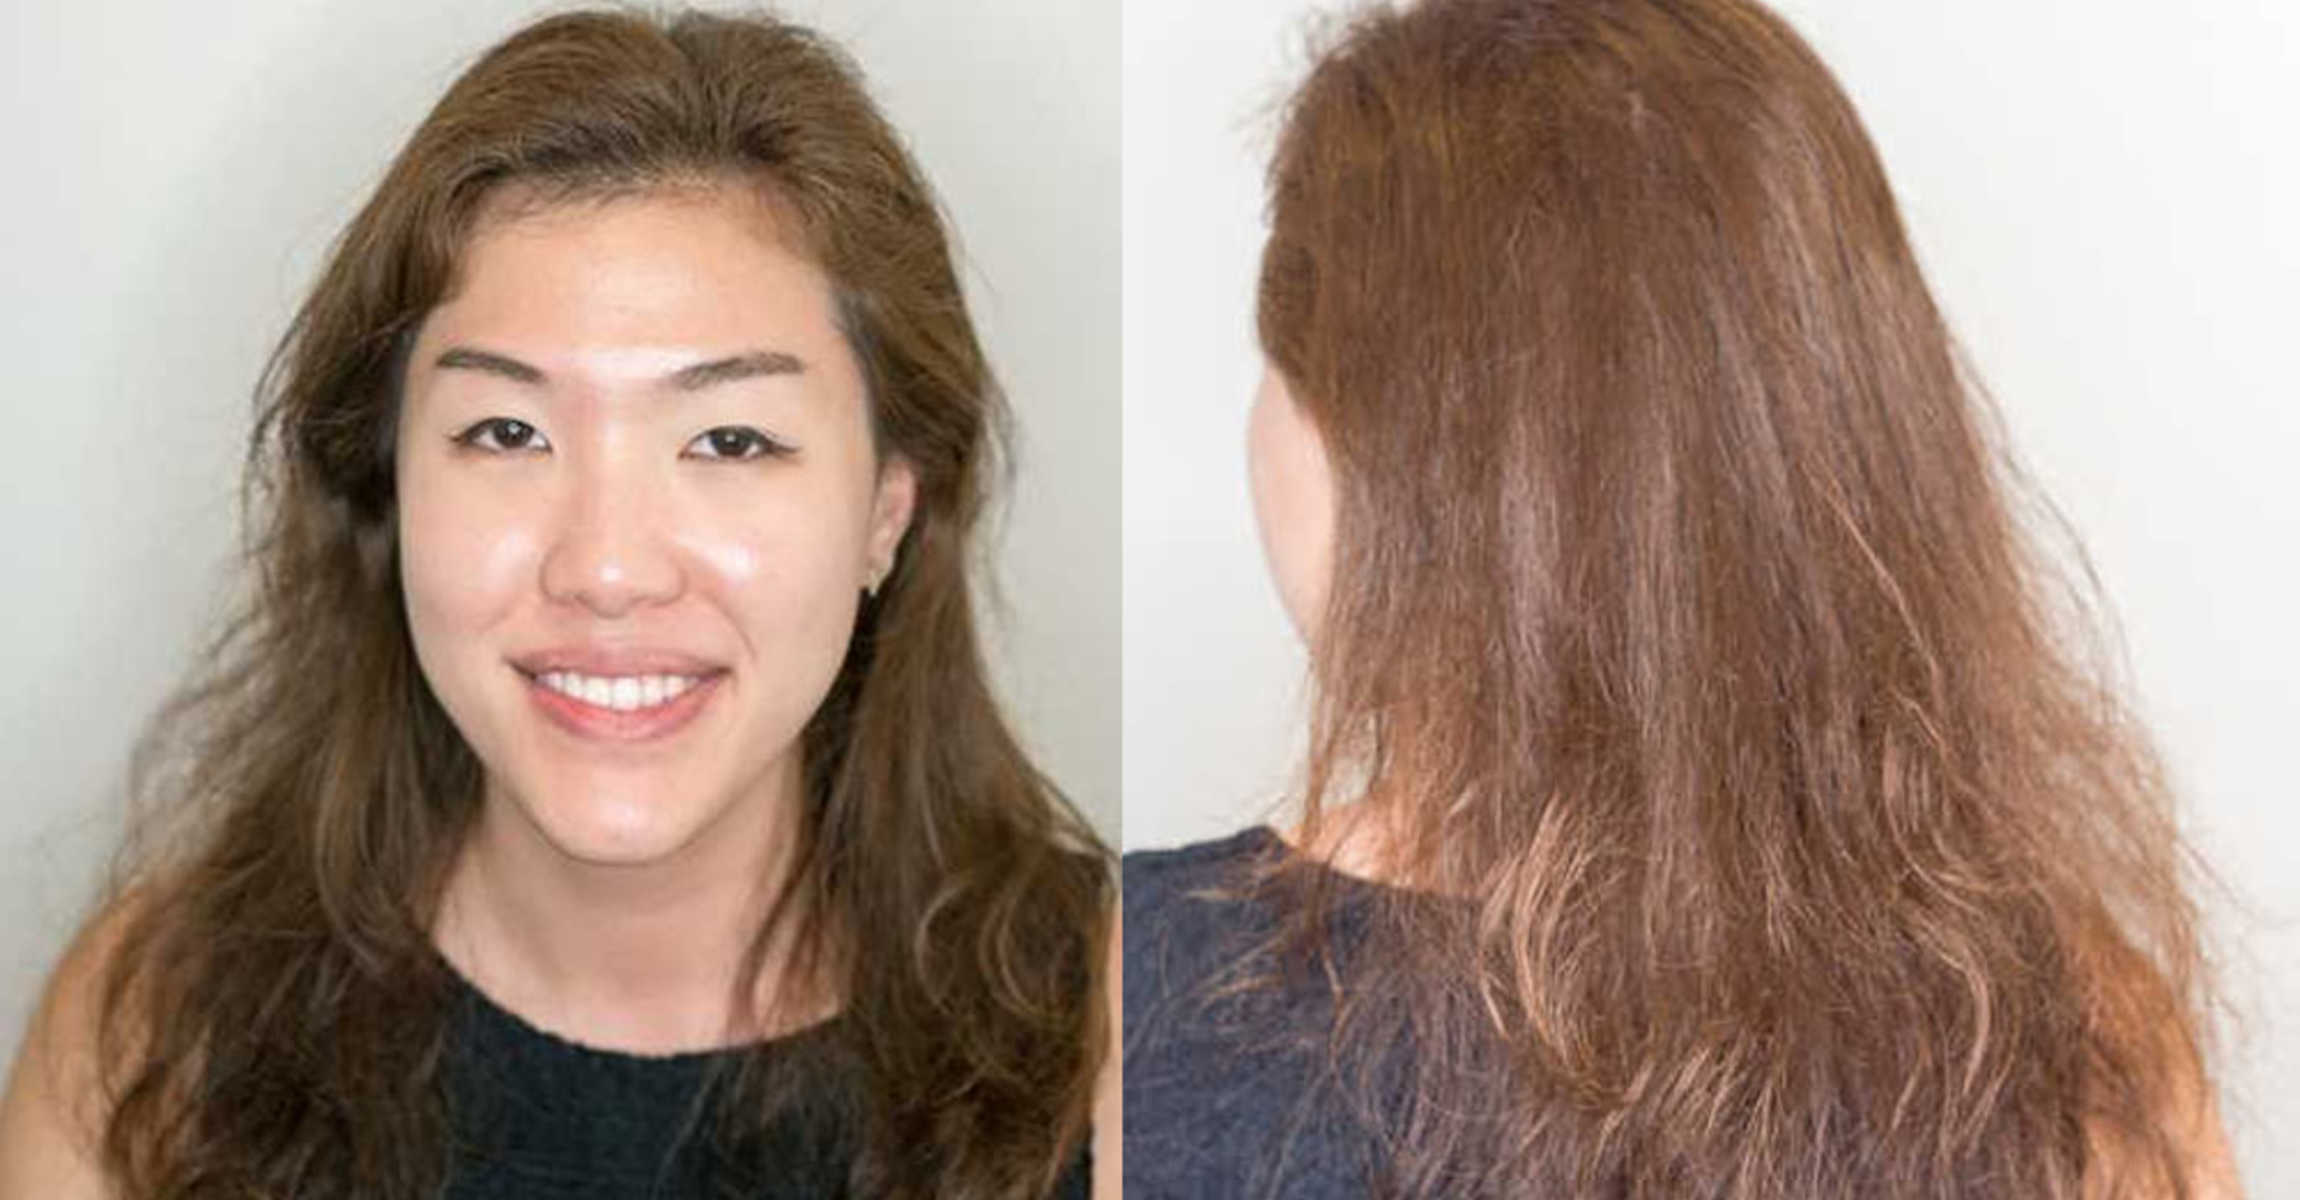 The Impossible Perm Made Possible: Agent JK FINALLY Tamed Her Crazy Hair at Picasso Hair Studio